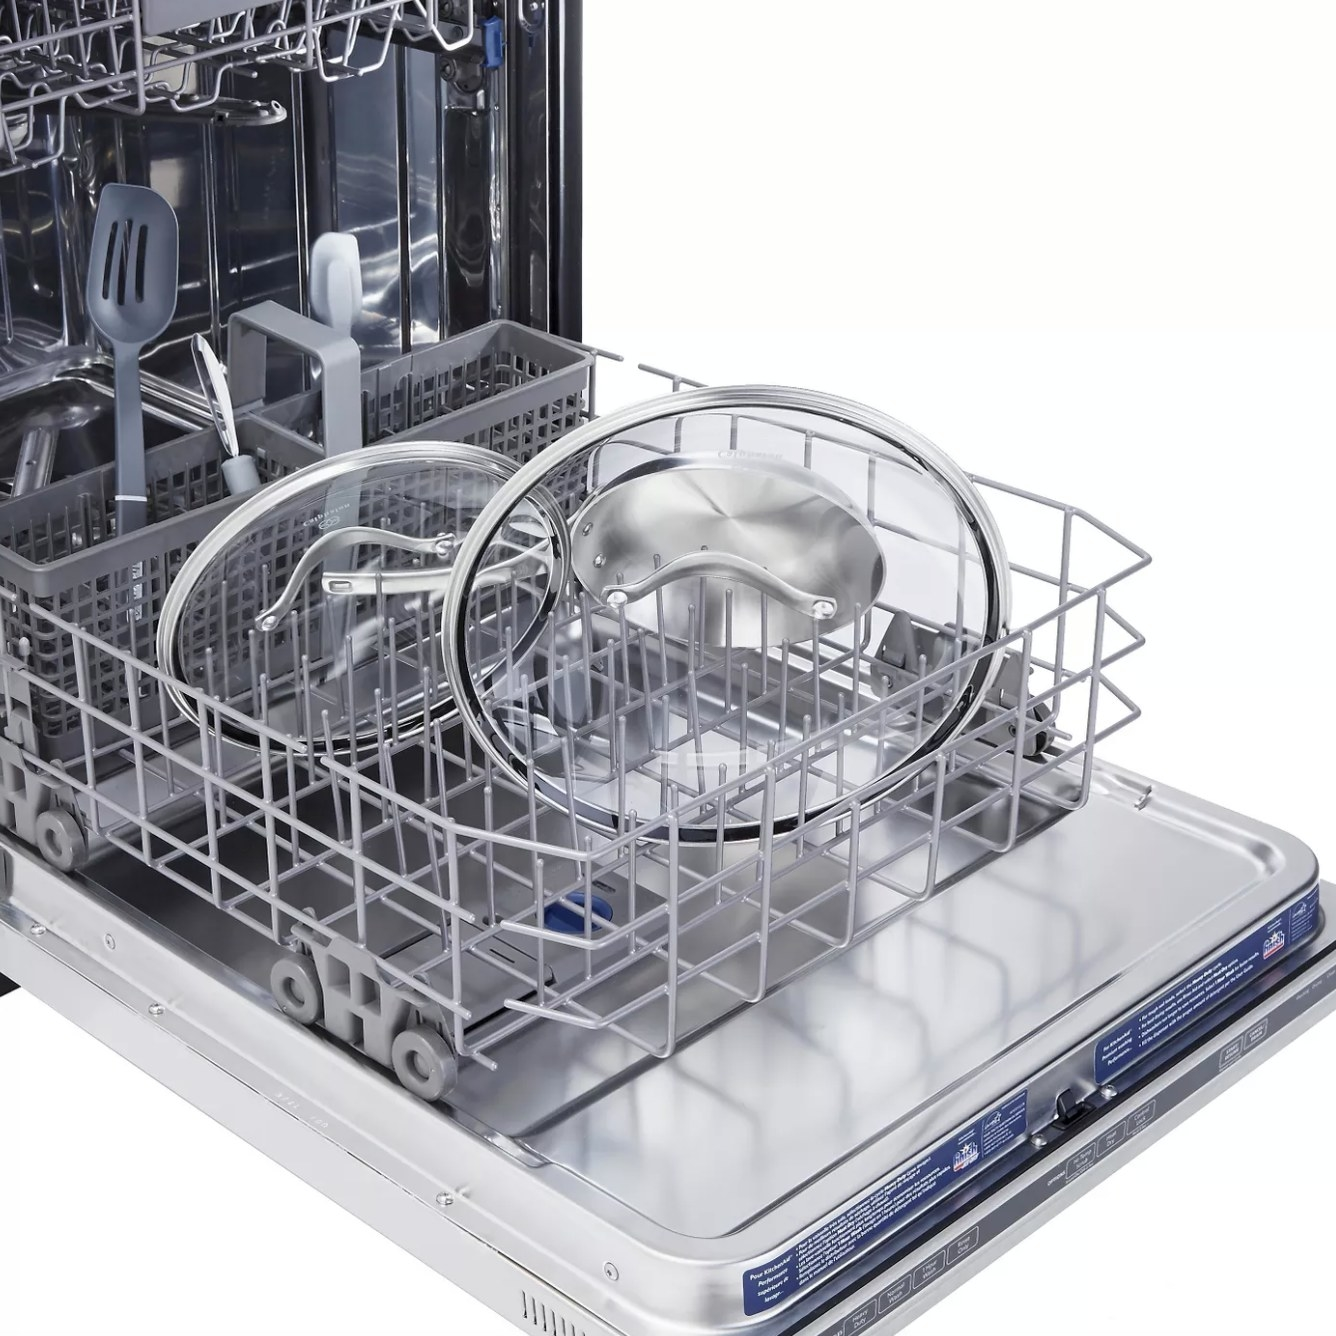 The 11 inch clear glass cover in a dishwasher